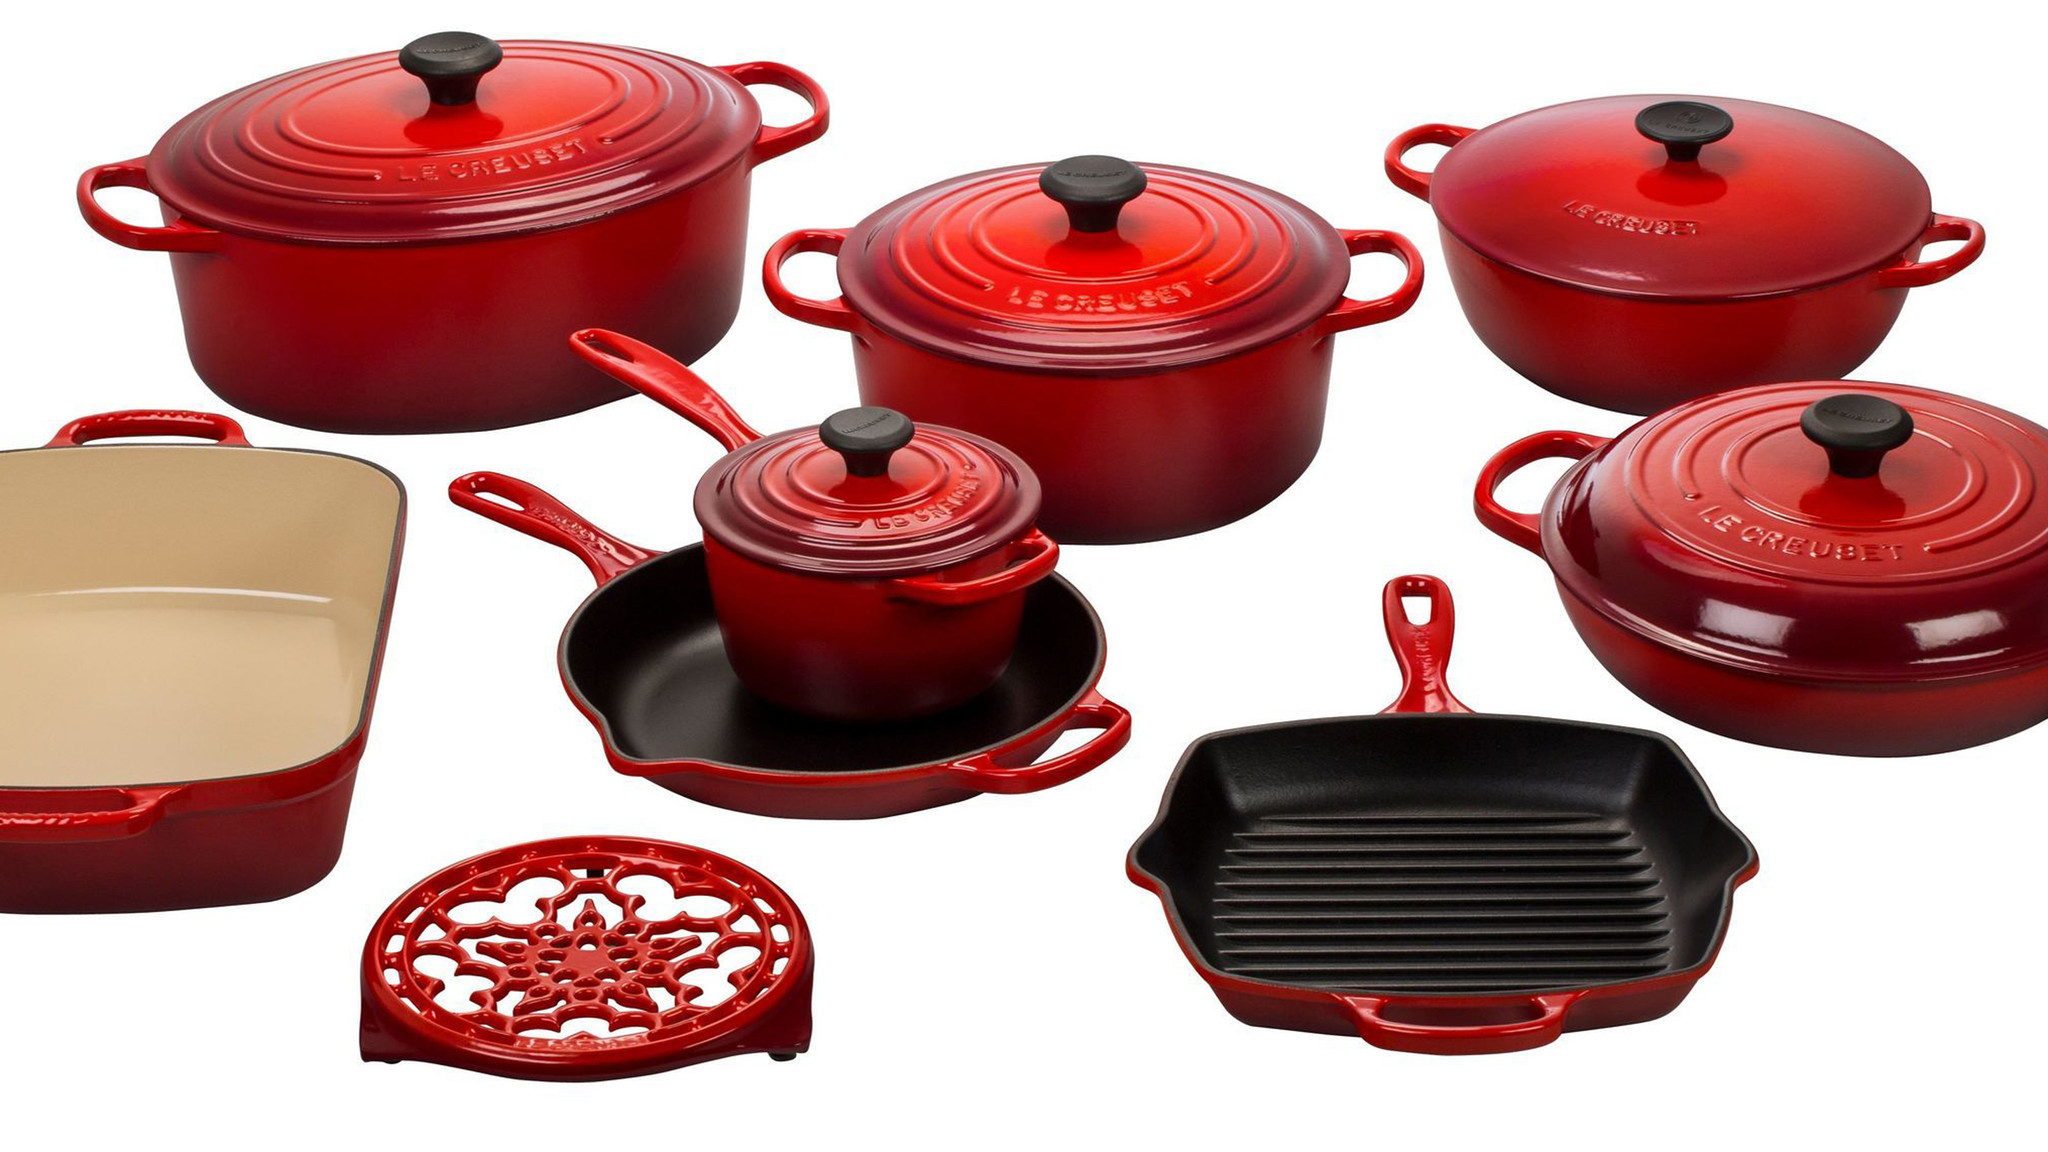 An eight-piece cast iron set from Le Creuset.